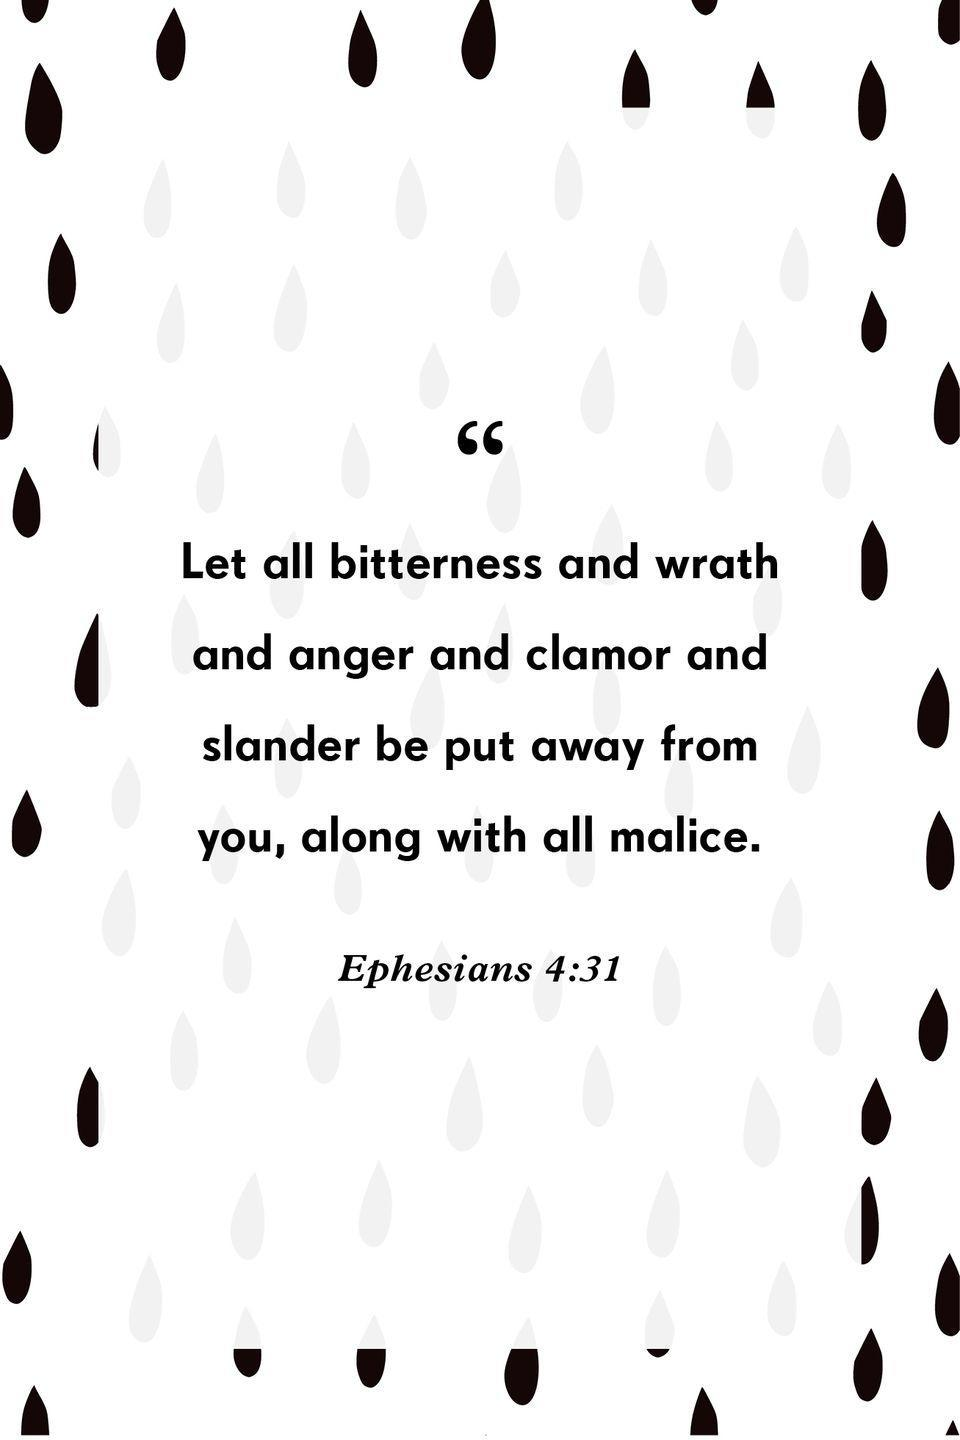 """<p>""""Let all bitterness and wrath and anger and clamor and slander be put away from you, along with all malice.""""</p>"""